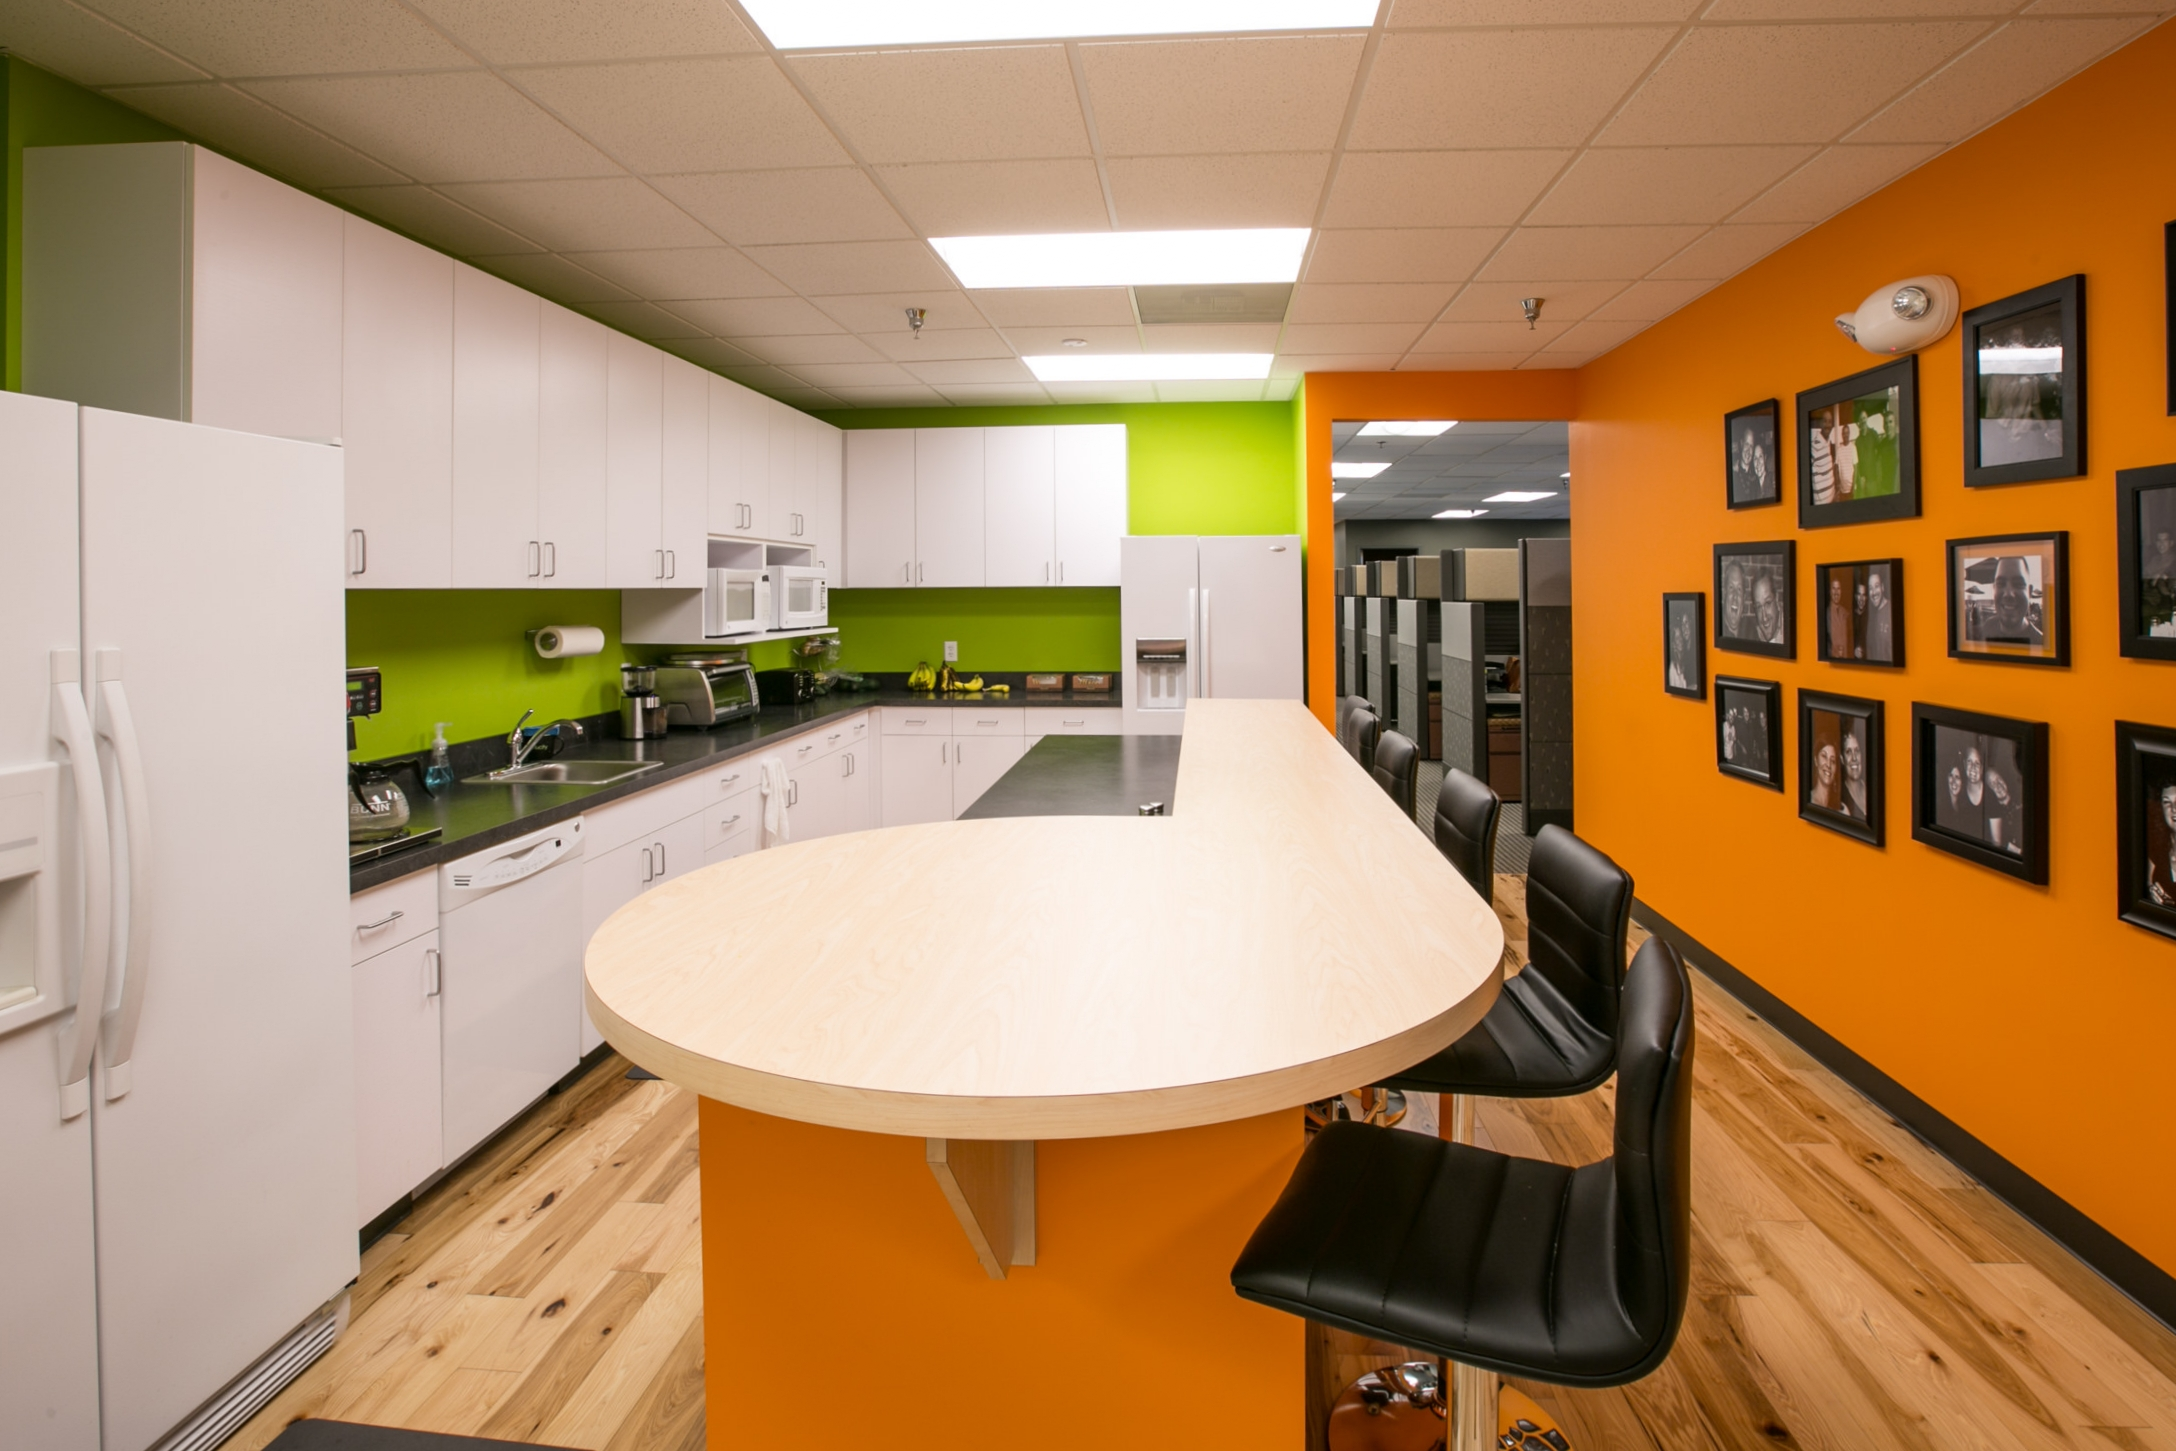 Lucity's new break room in their remodeled office space